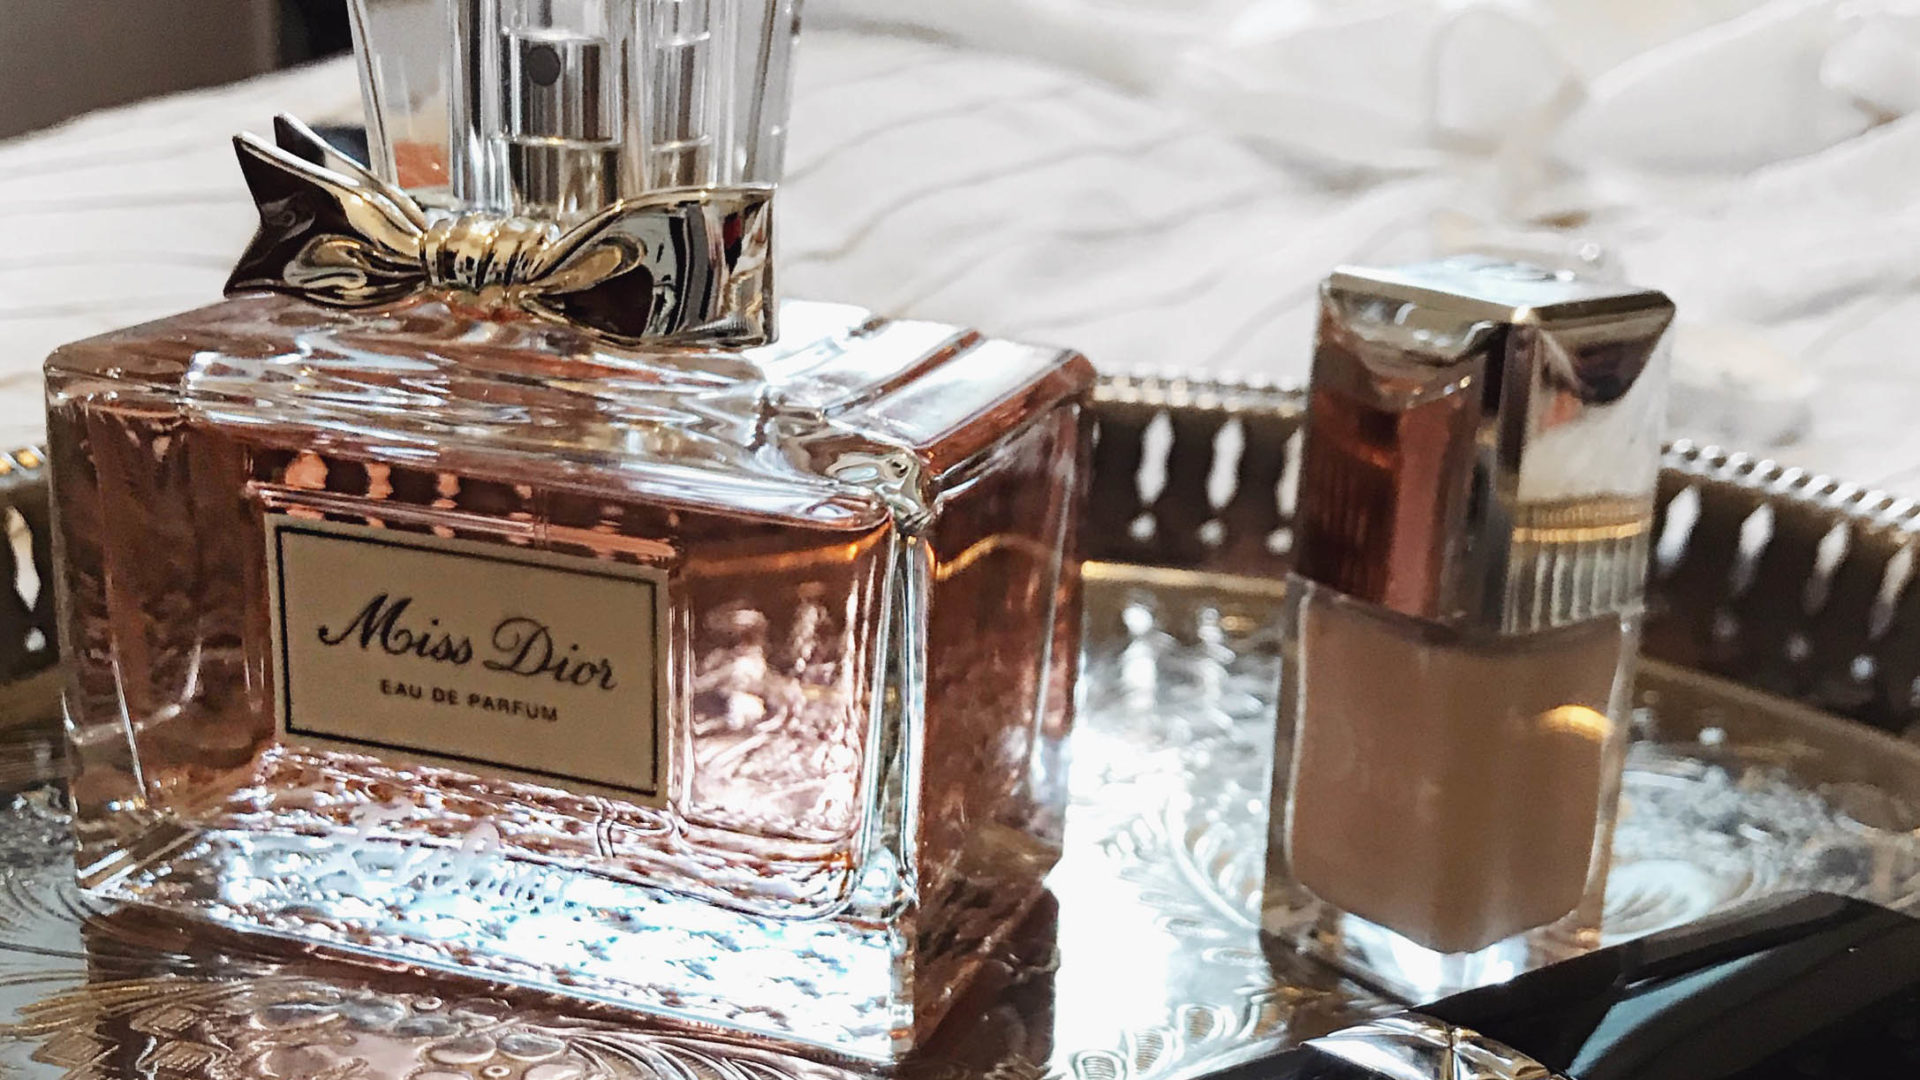 MISS DIOR - THE NEW EAU THE PARFUM